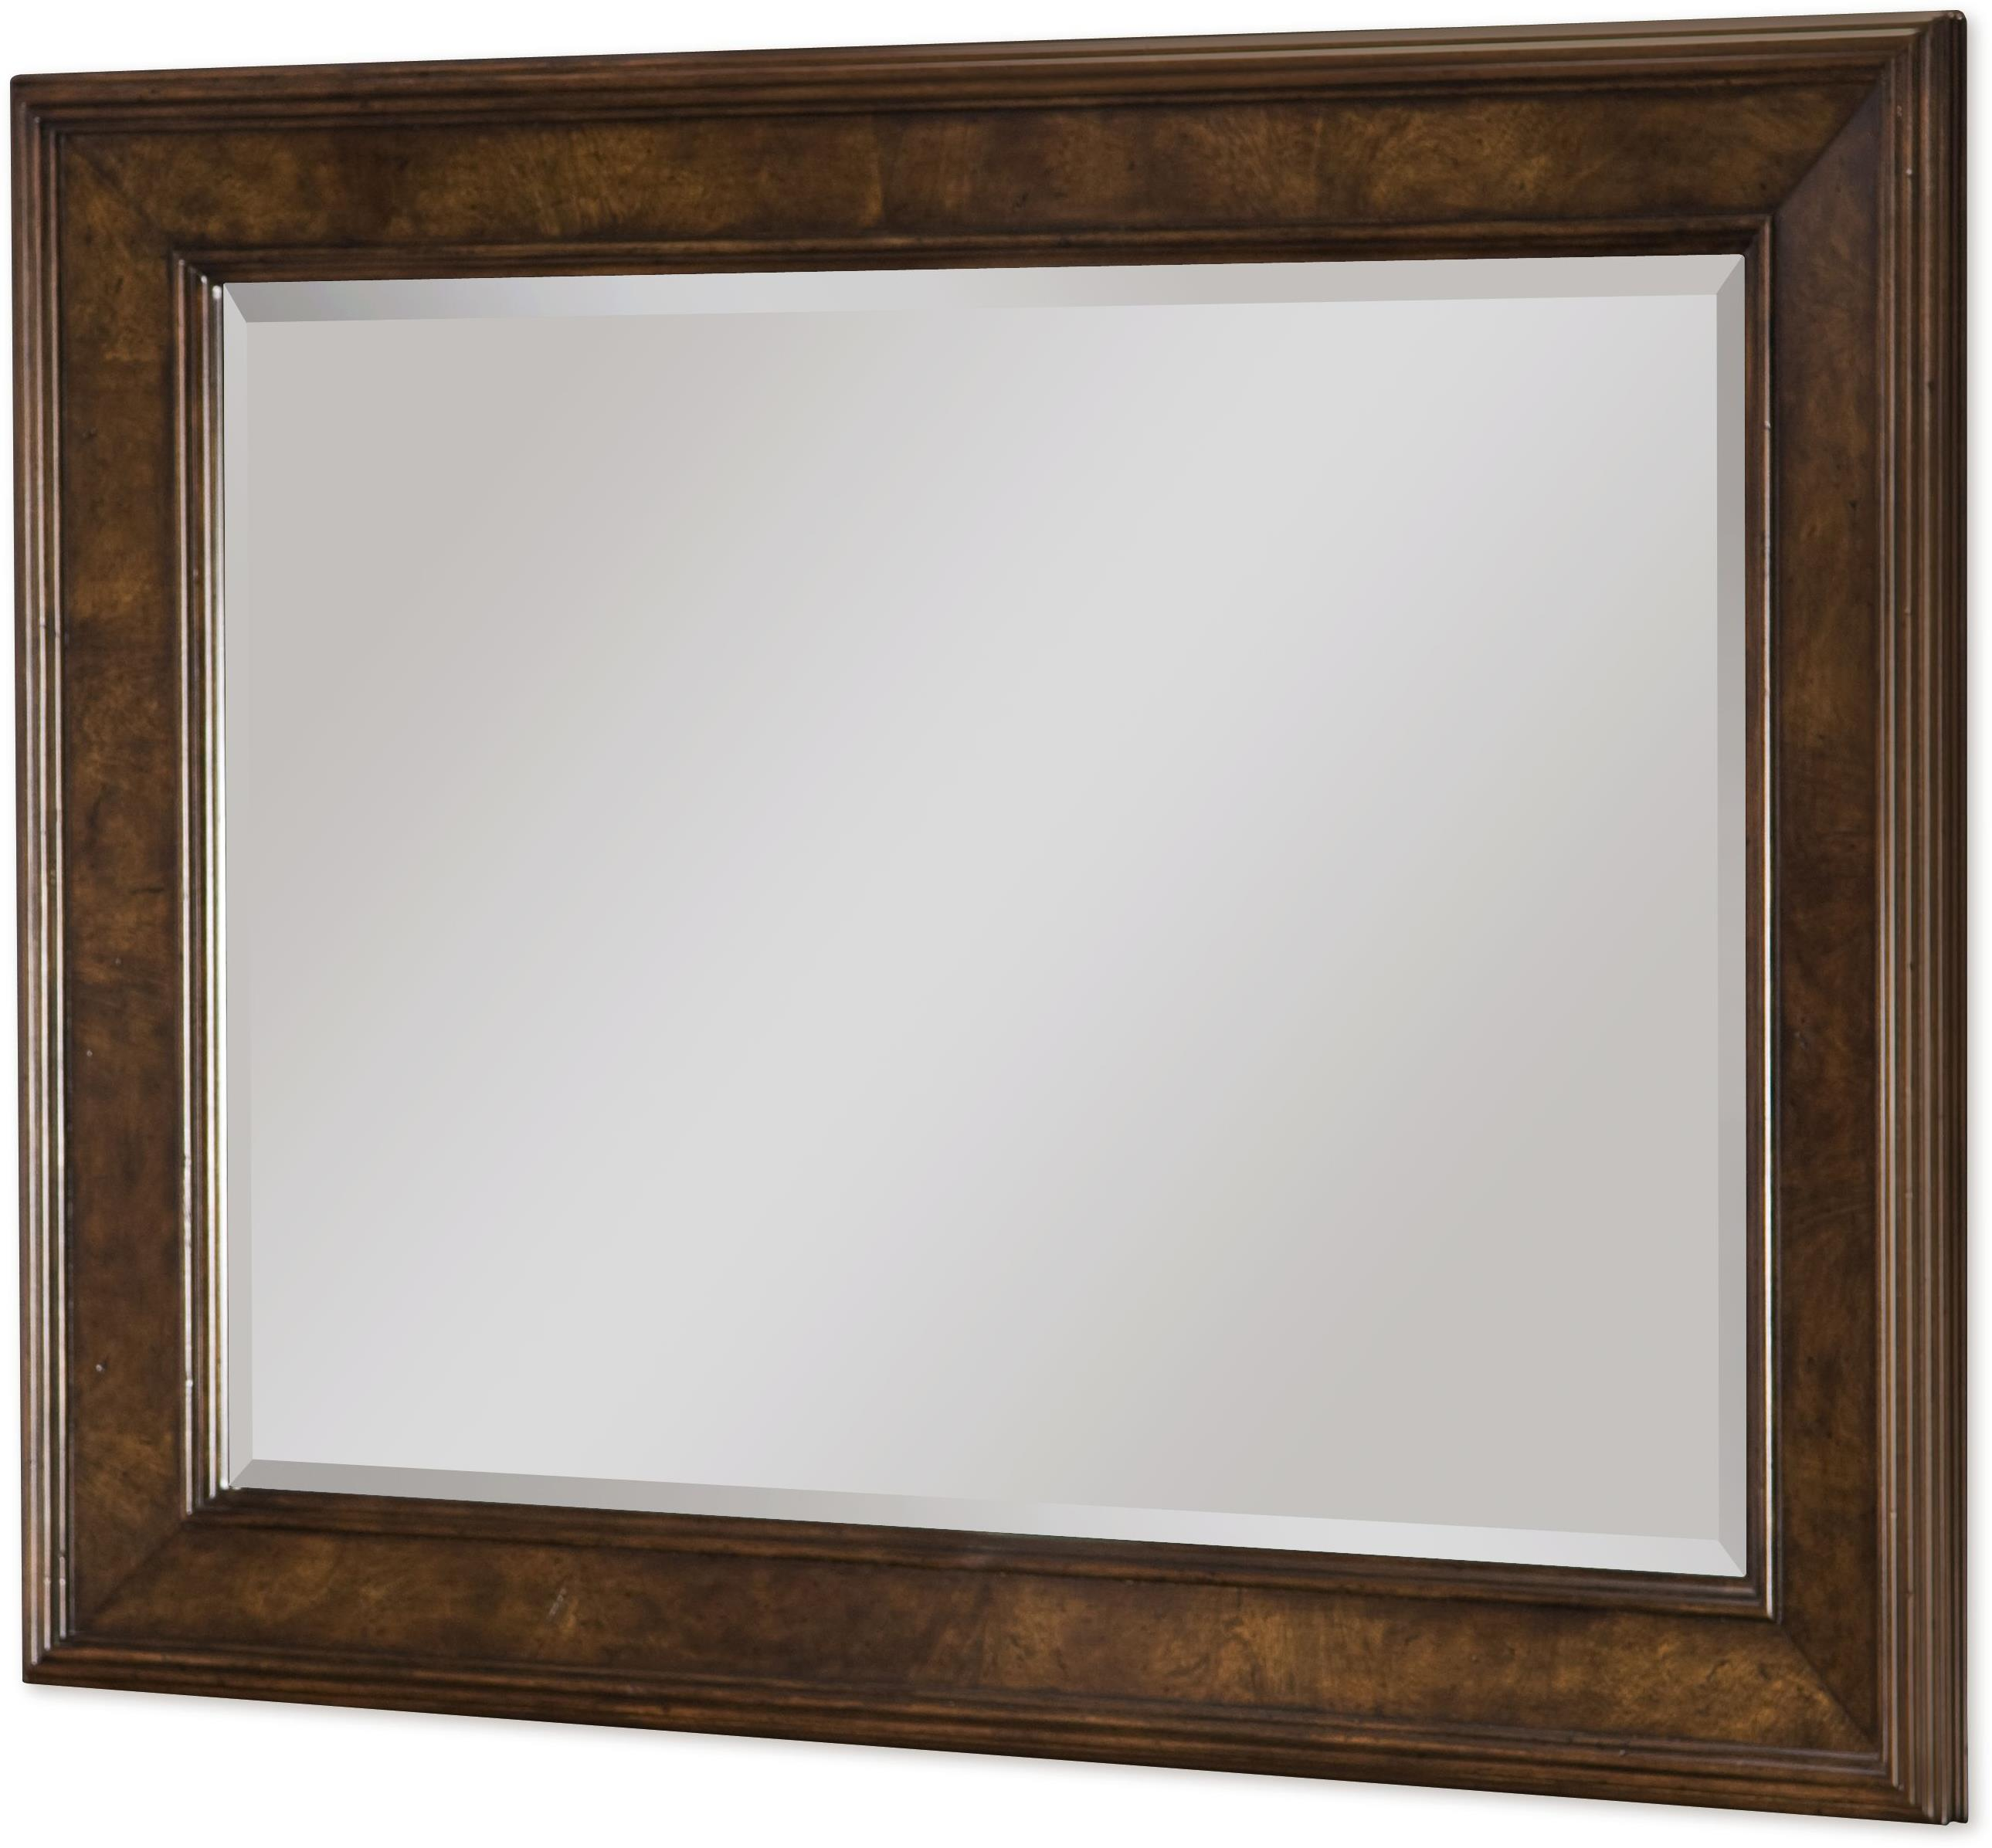 Legacy Classic Barrington Farm Landscape Mirror  - Item Number: 5200-0400